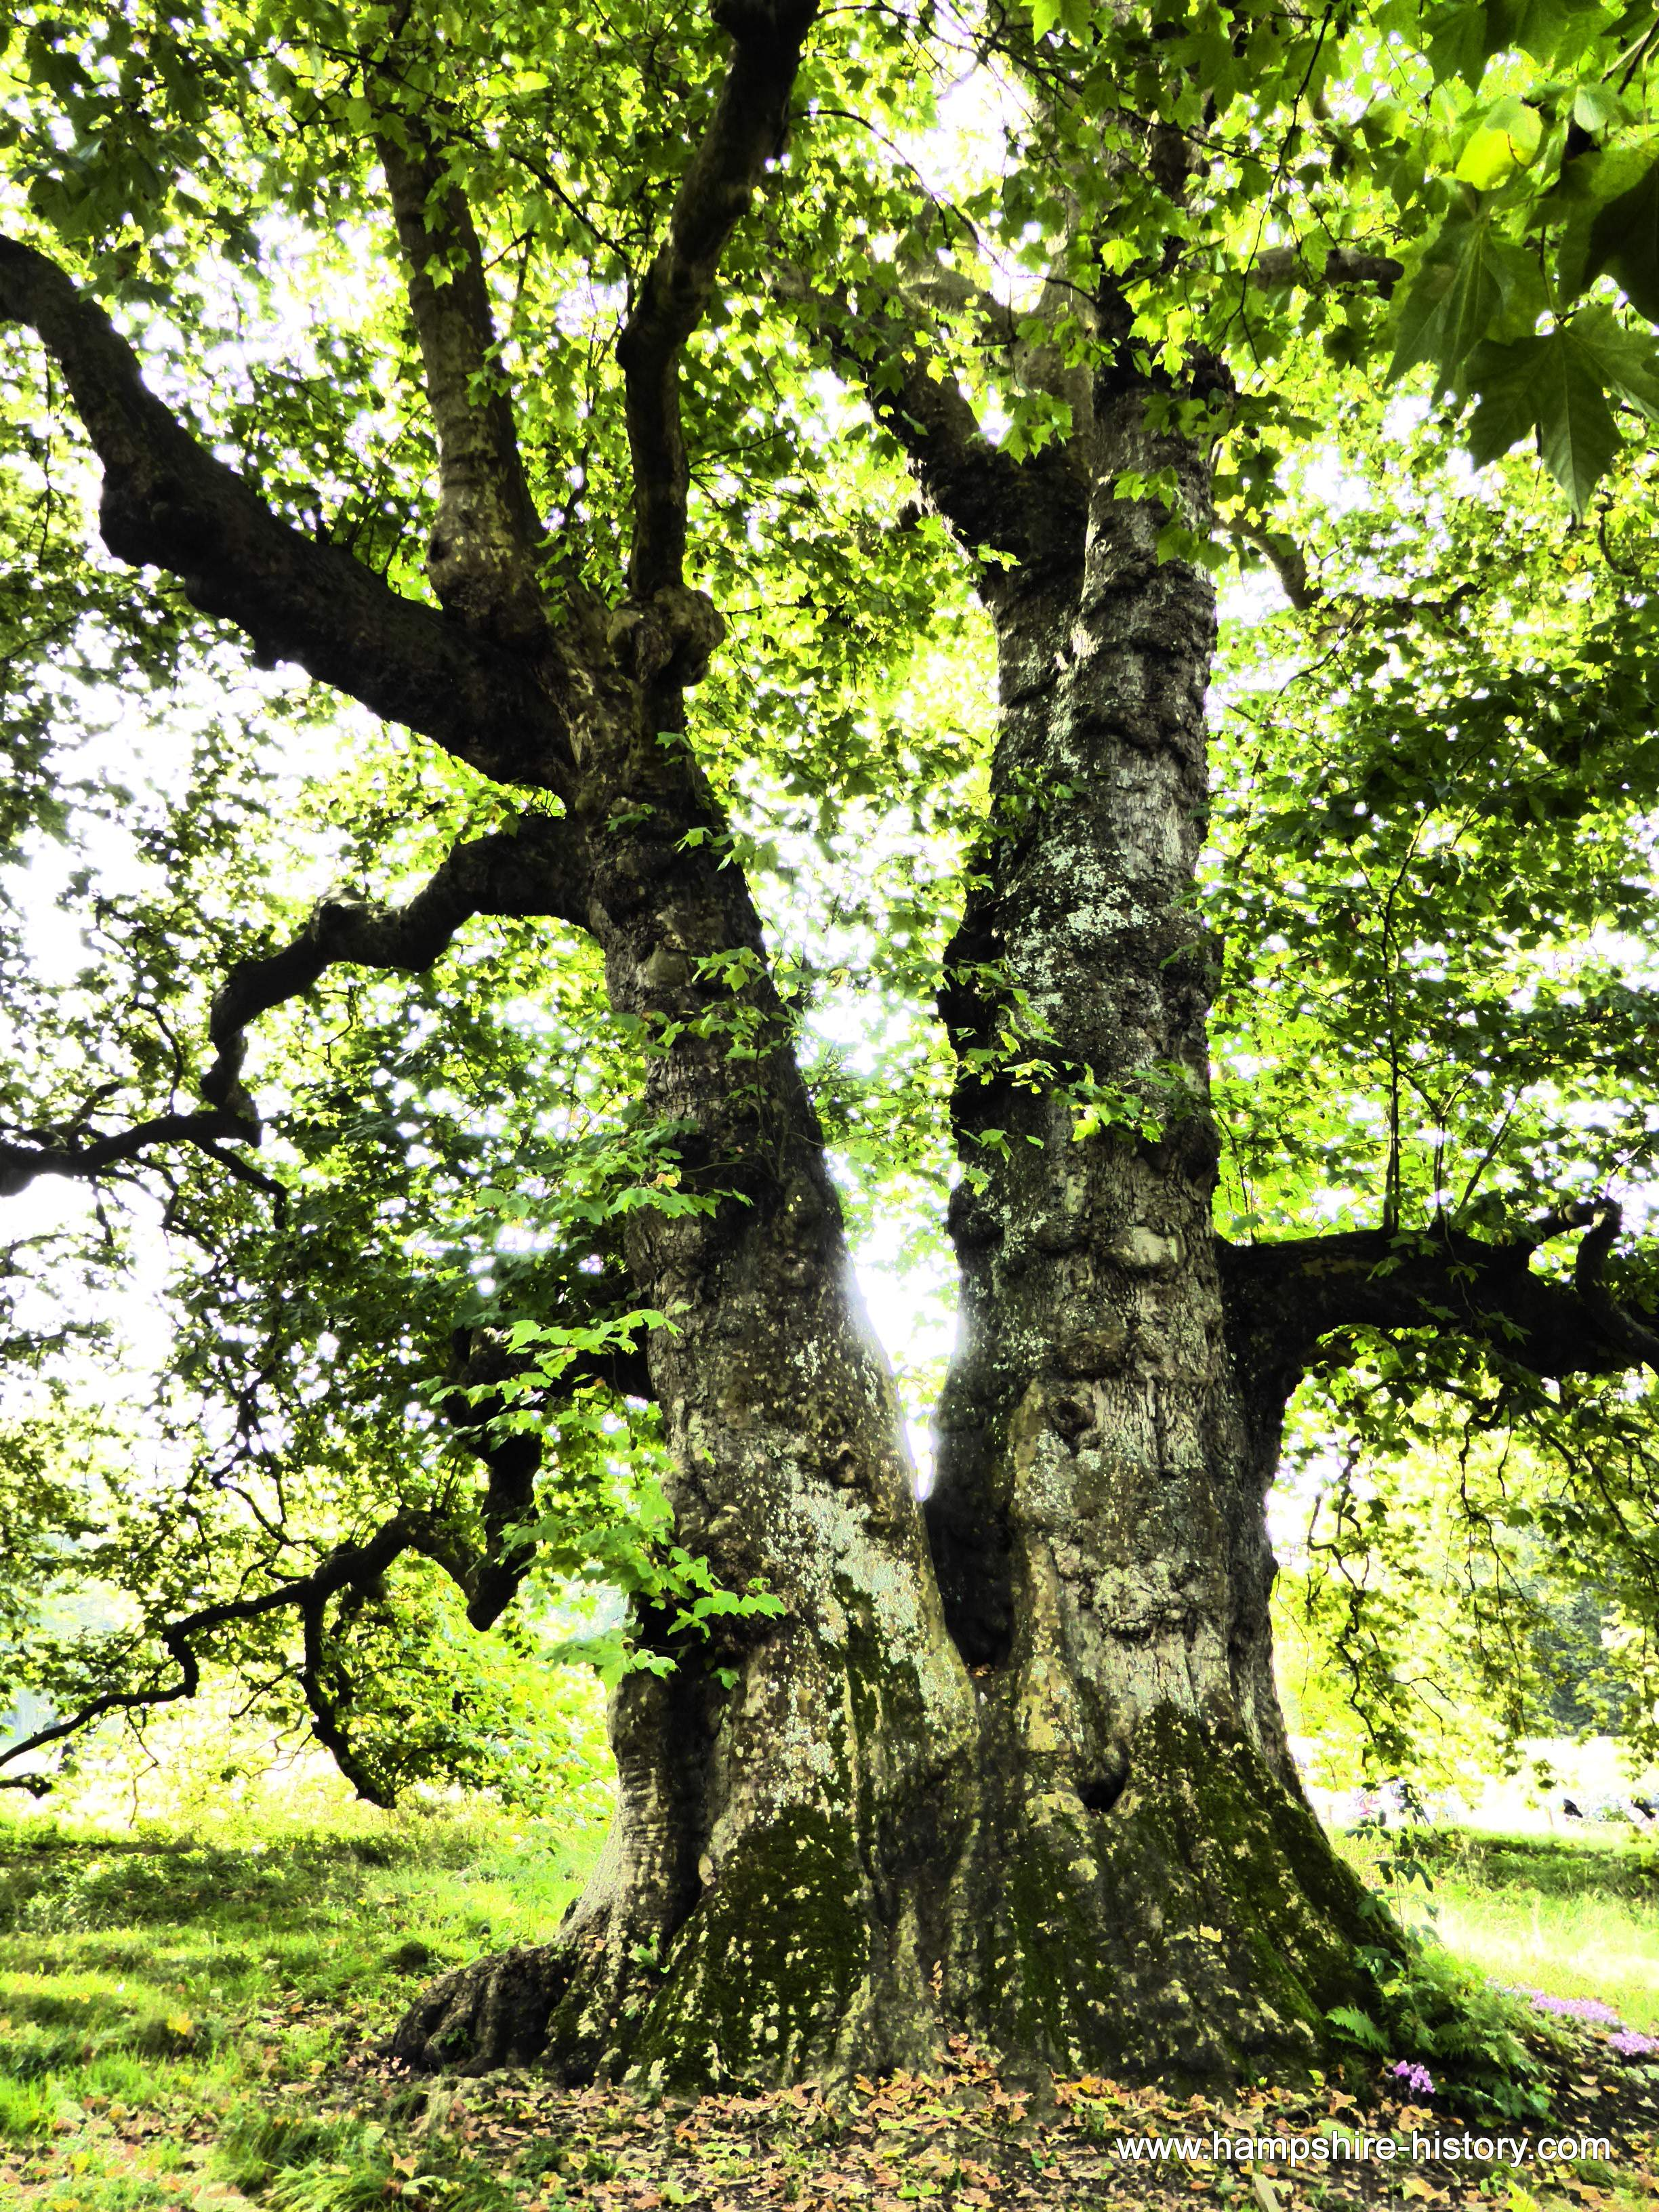 The Great Plane Tree of Mottisfont